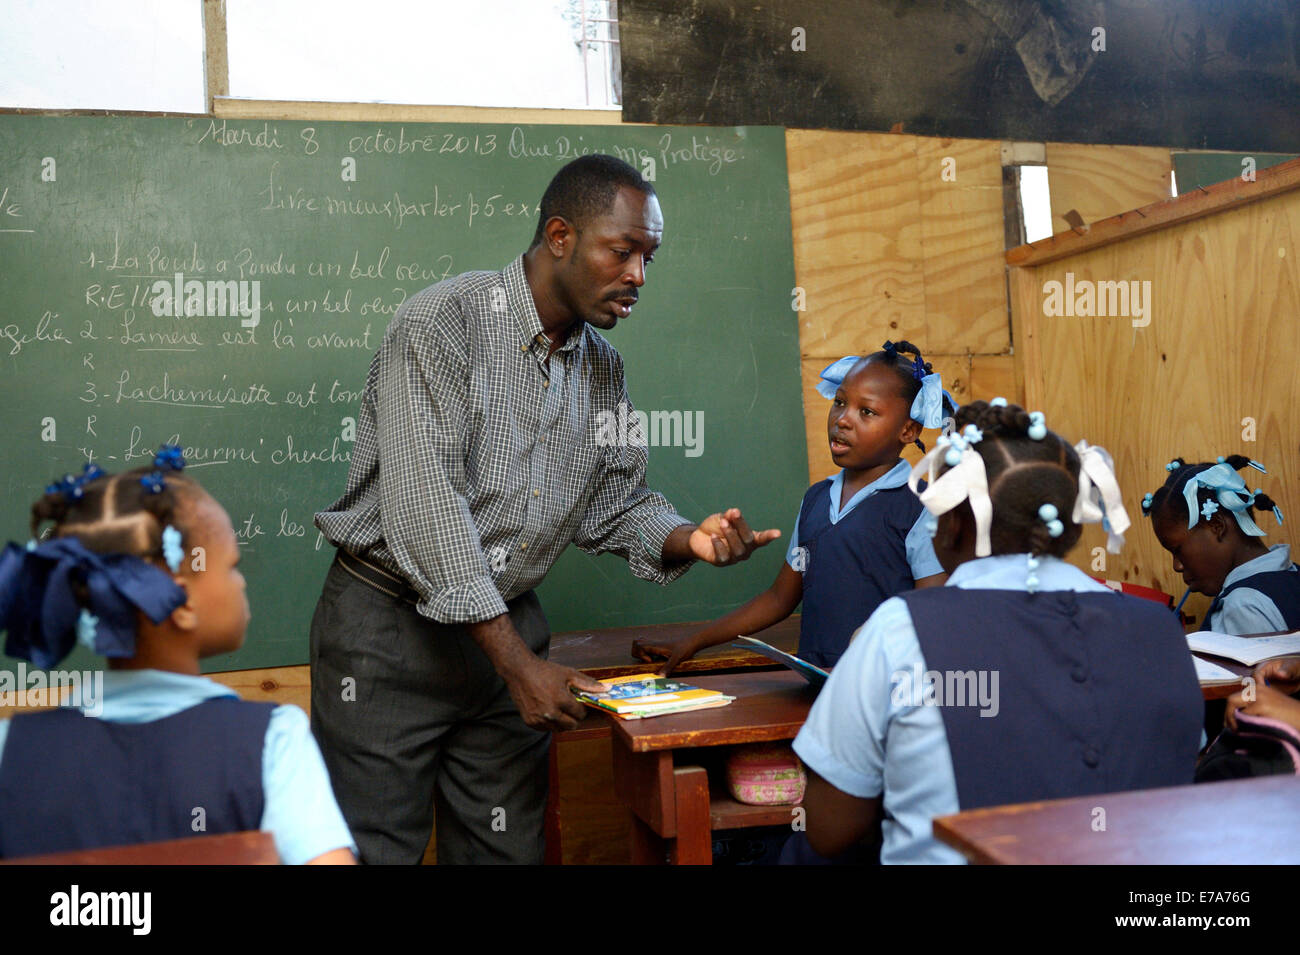 Teaching in a school for earthquake refugees, Fort National, Port-au-Prince, Haiti - Stock Image